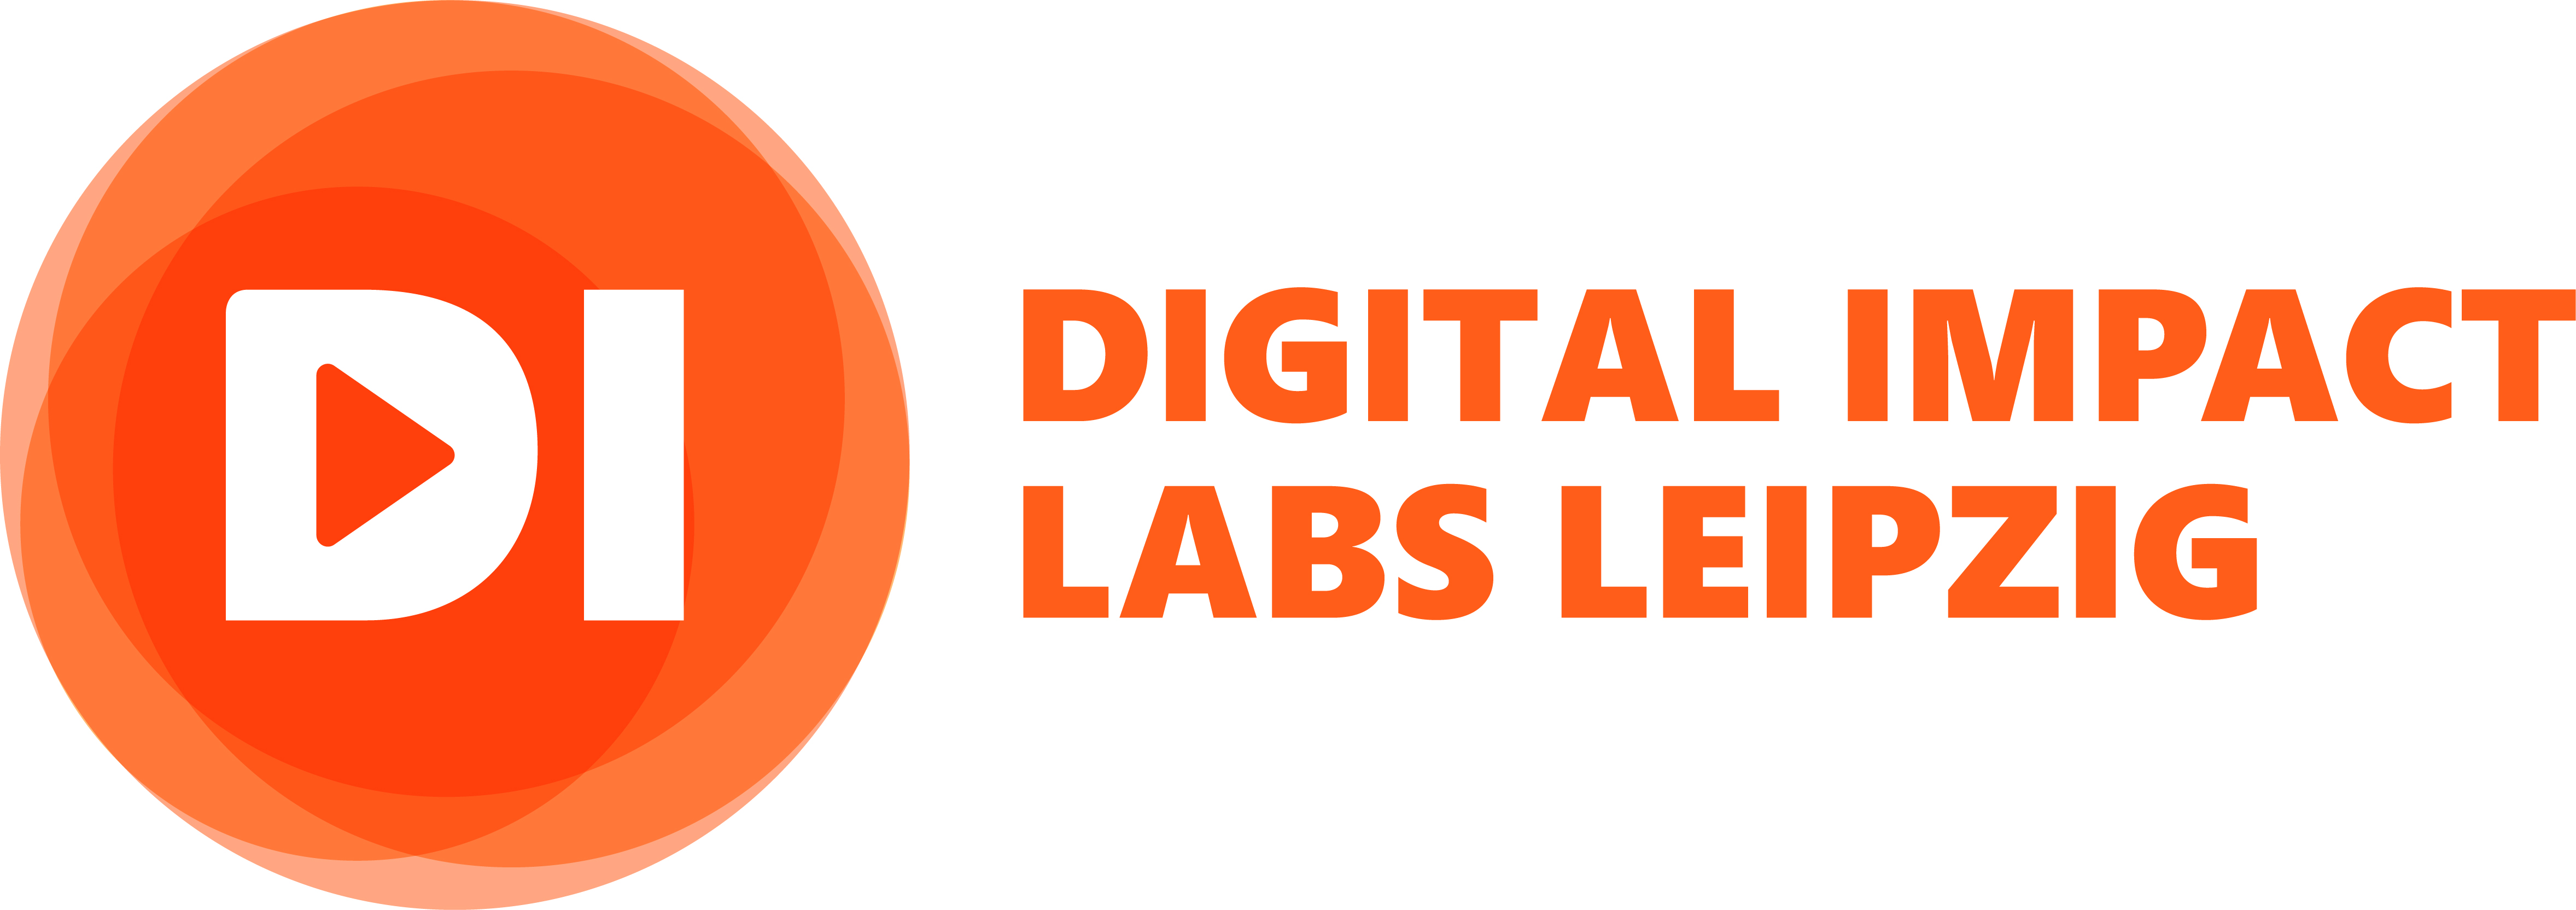 Digital Impact Labs Leipzig